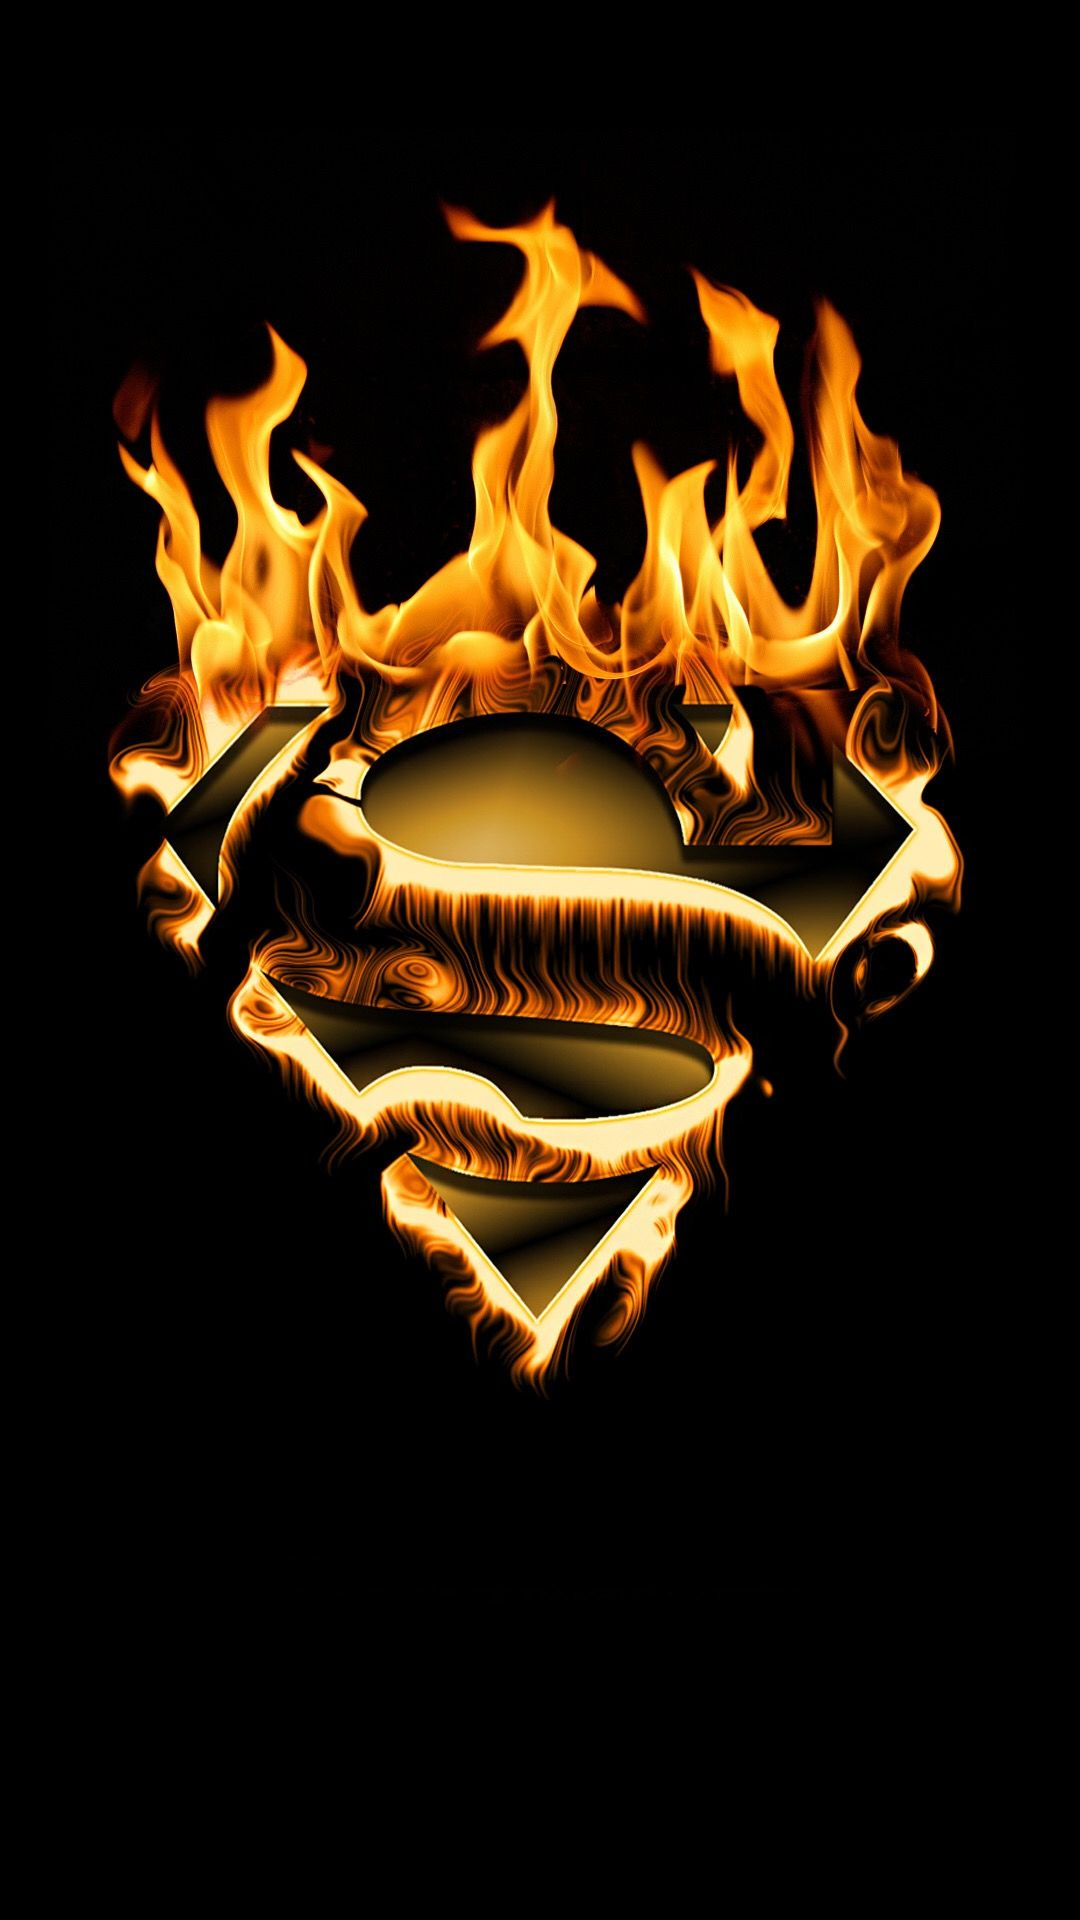 First My Name Superman Wallpaper Superman Artwork Marvel